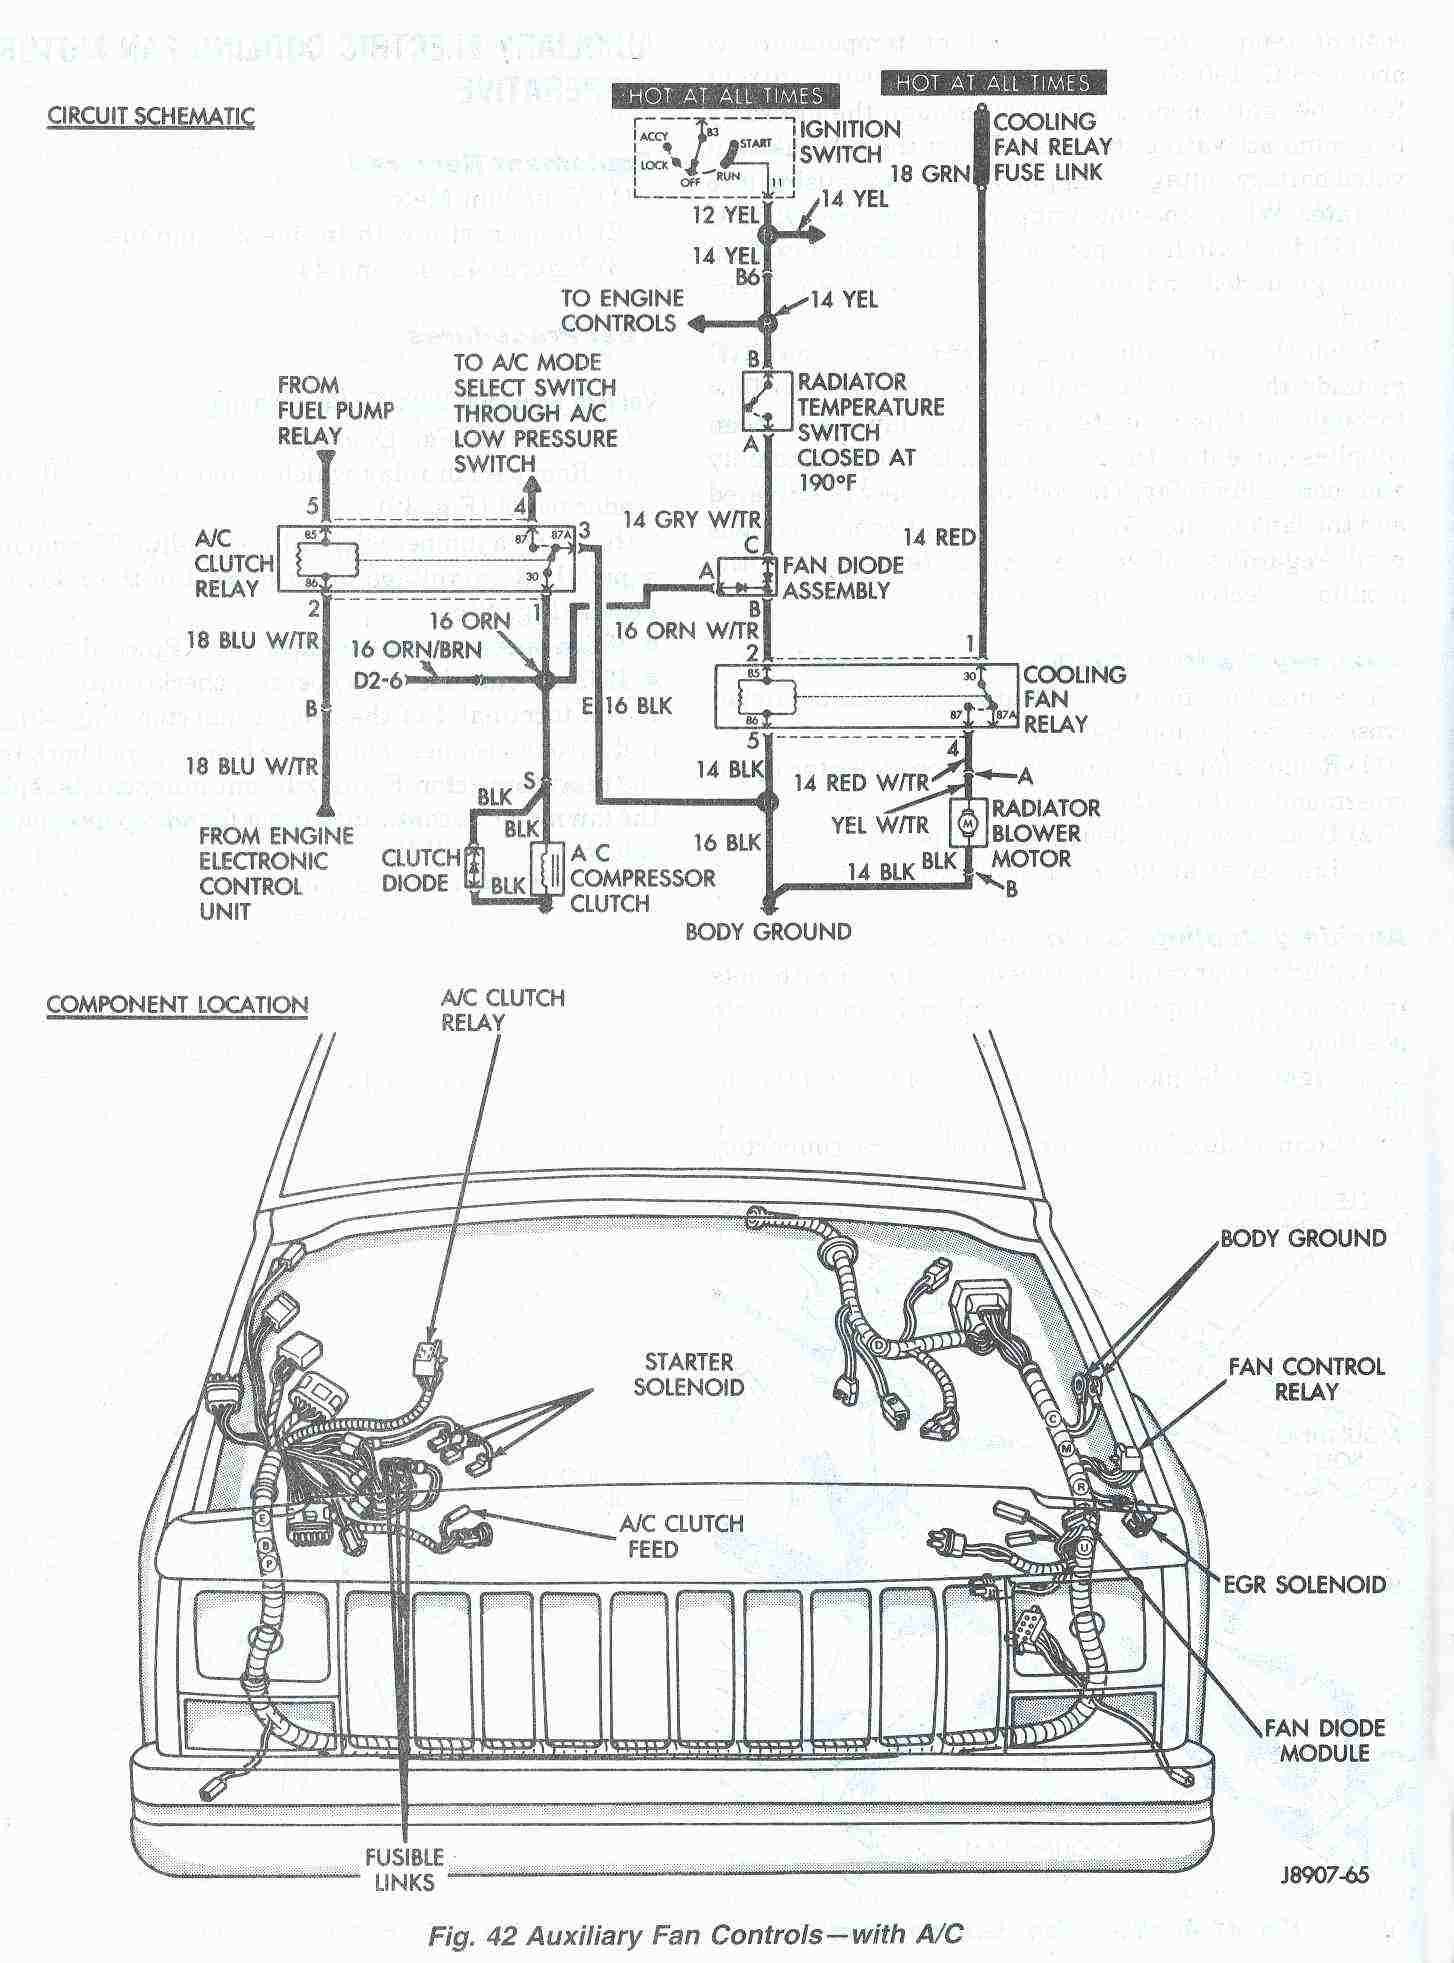 e8c83109bad6c41d377df8c1cb7a8dc4 at the asd relay if vole is not b16 check fuse 20 30 a good there 1998 jeep cherokee wiring harness diagram at alyssarenee.co